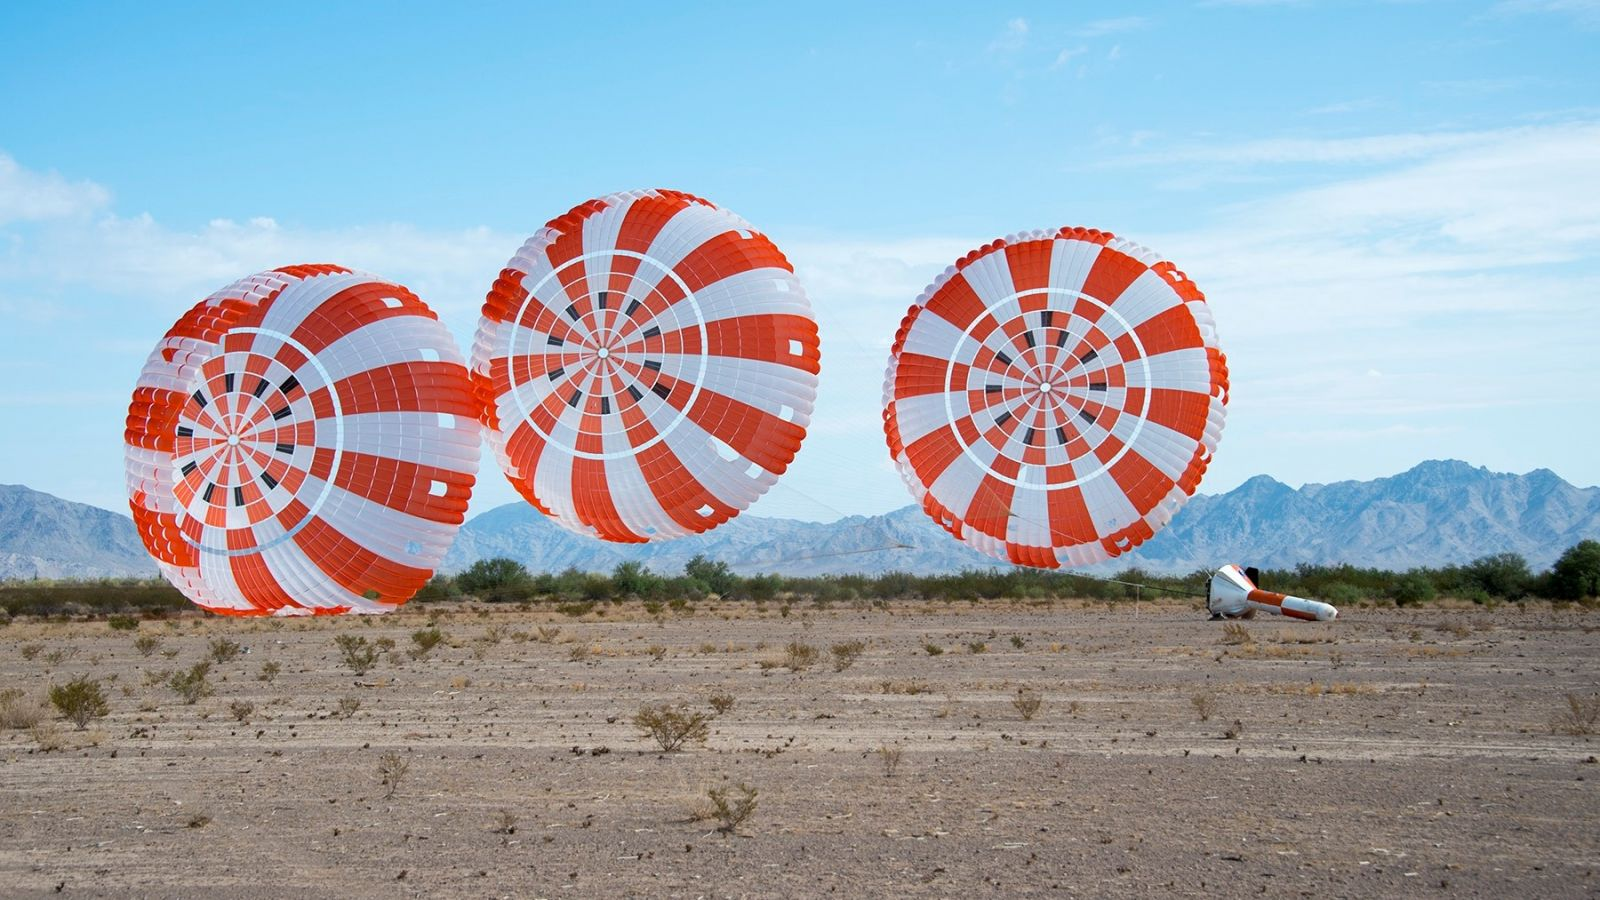 Orion's parachute system completes the seventh leap in a series of eight qualifying tests. Photo Credit: NASA